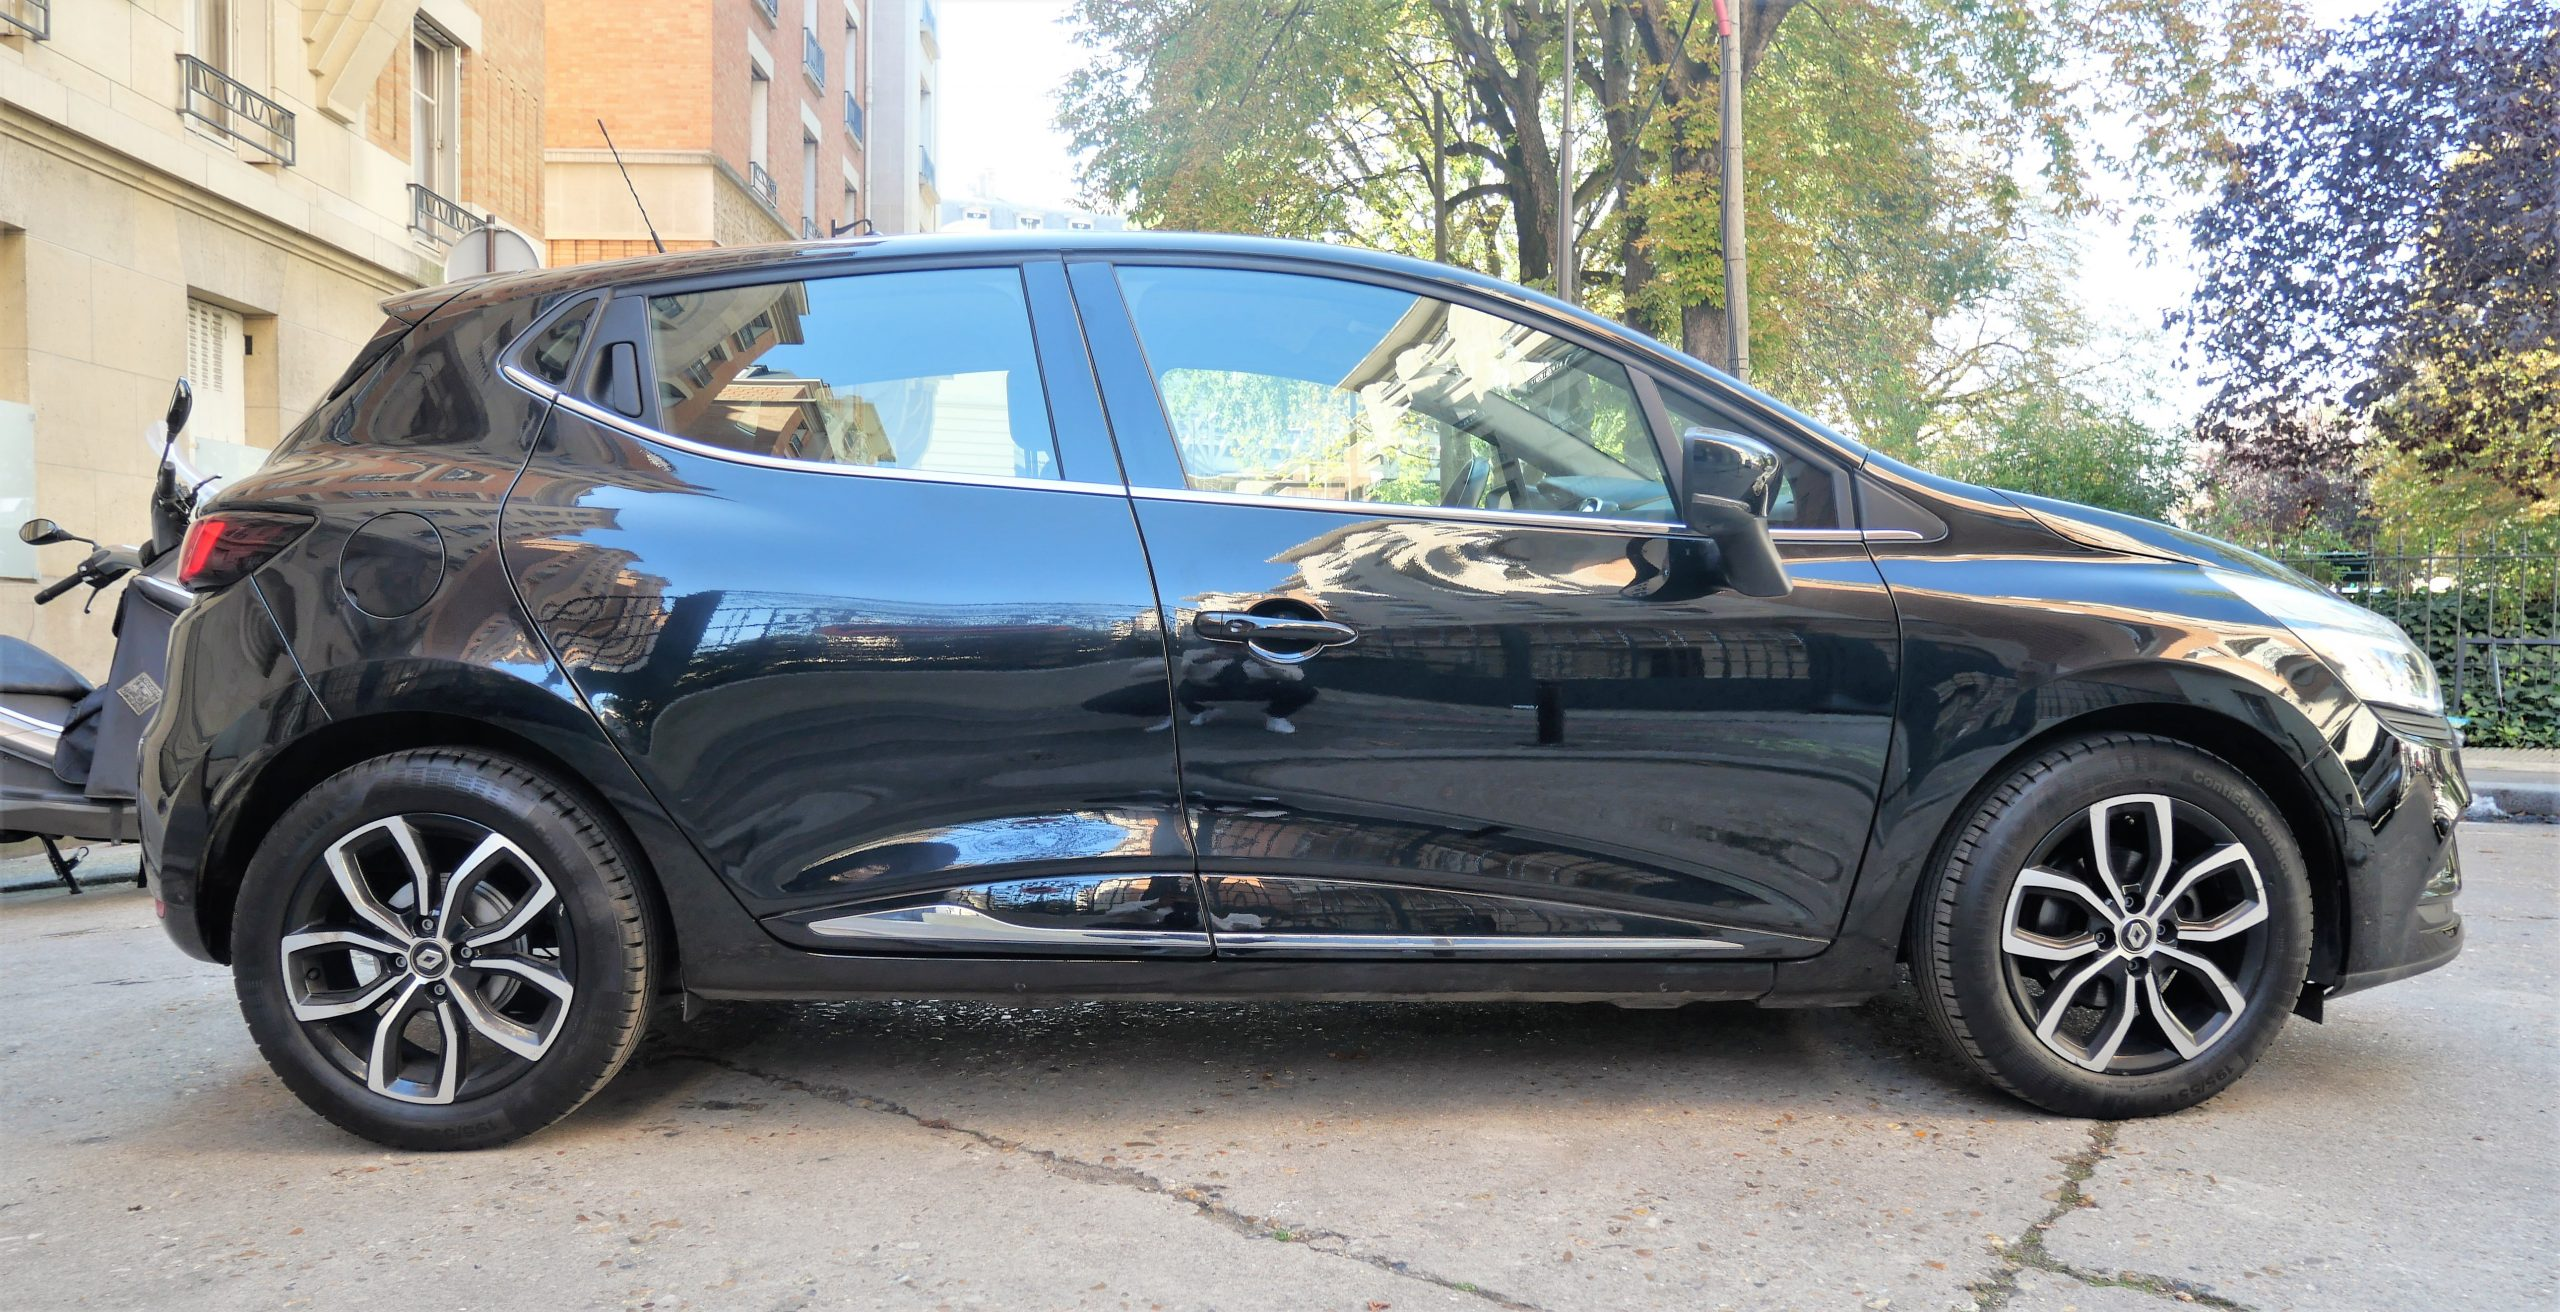 RENAULT Clio IV INTENS Phase 2 0.9 TCe 90 ch 5